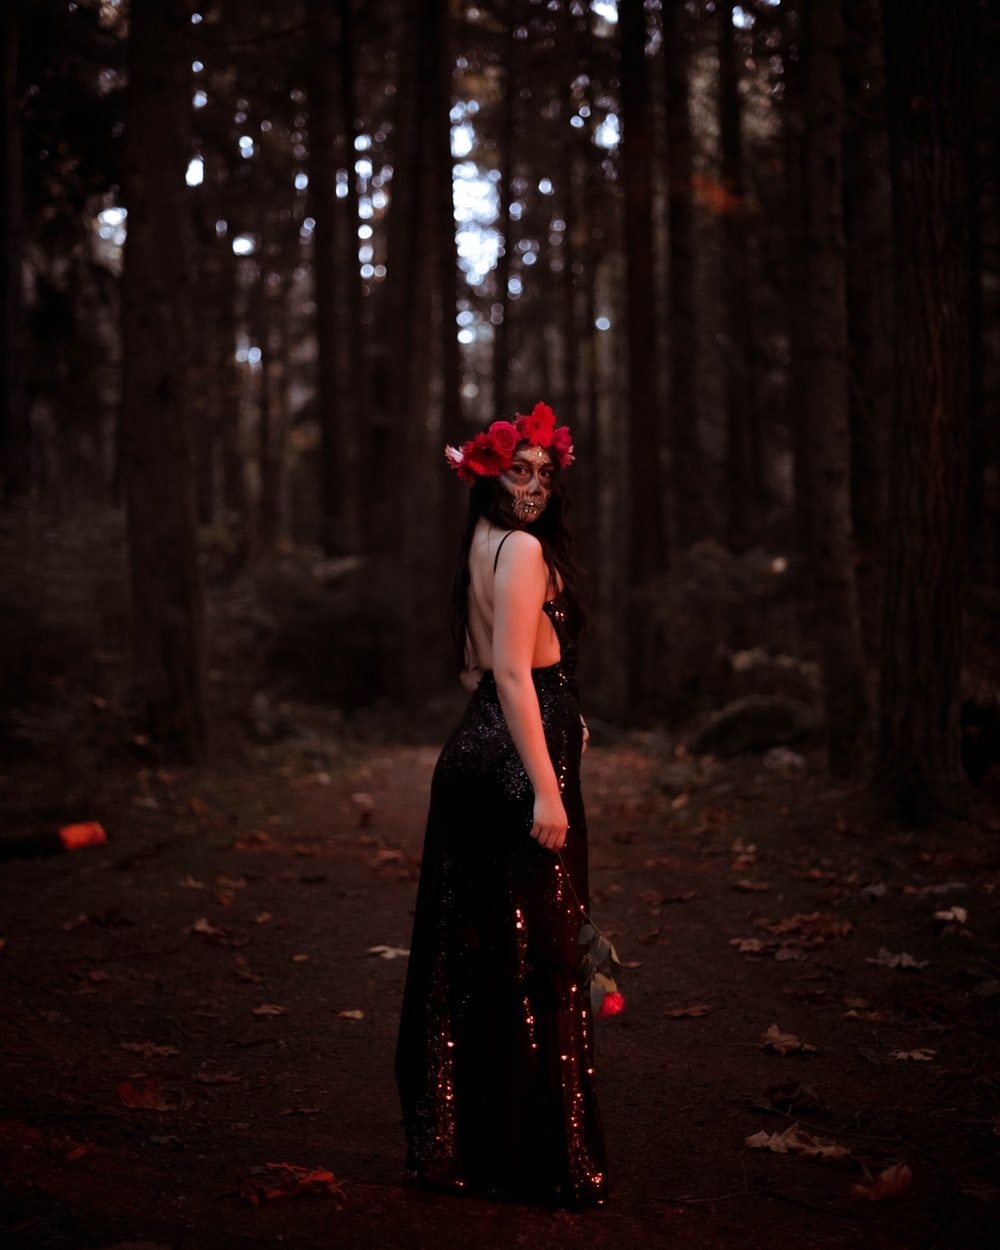 woman in black dress standing in the woods